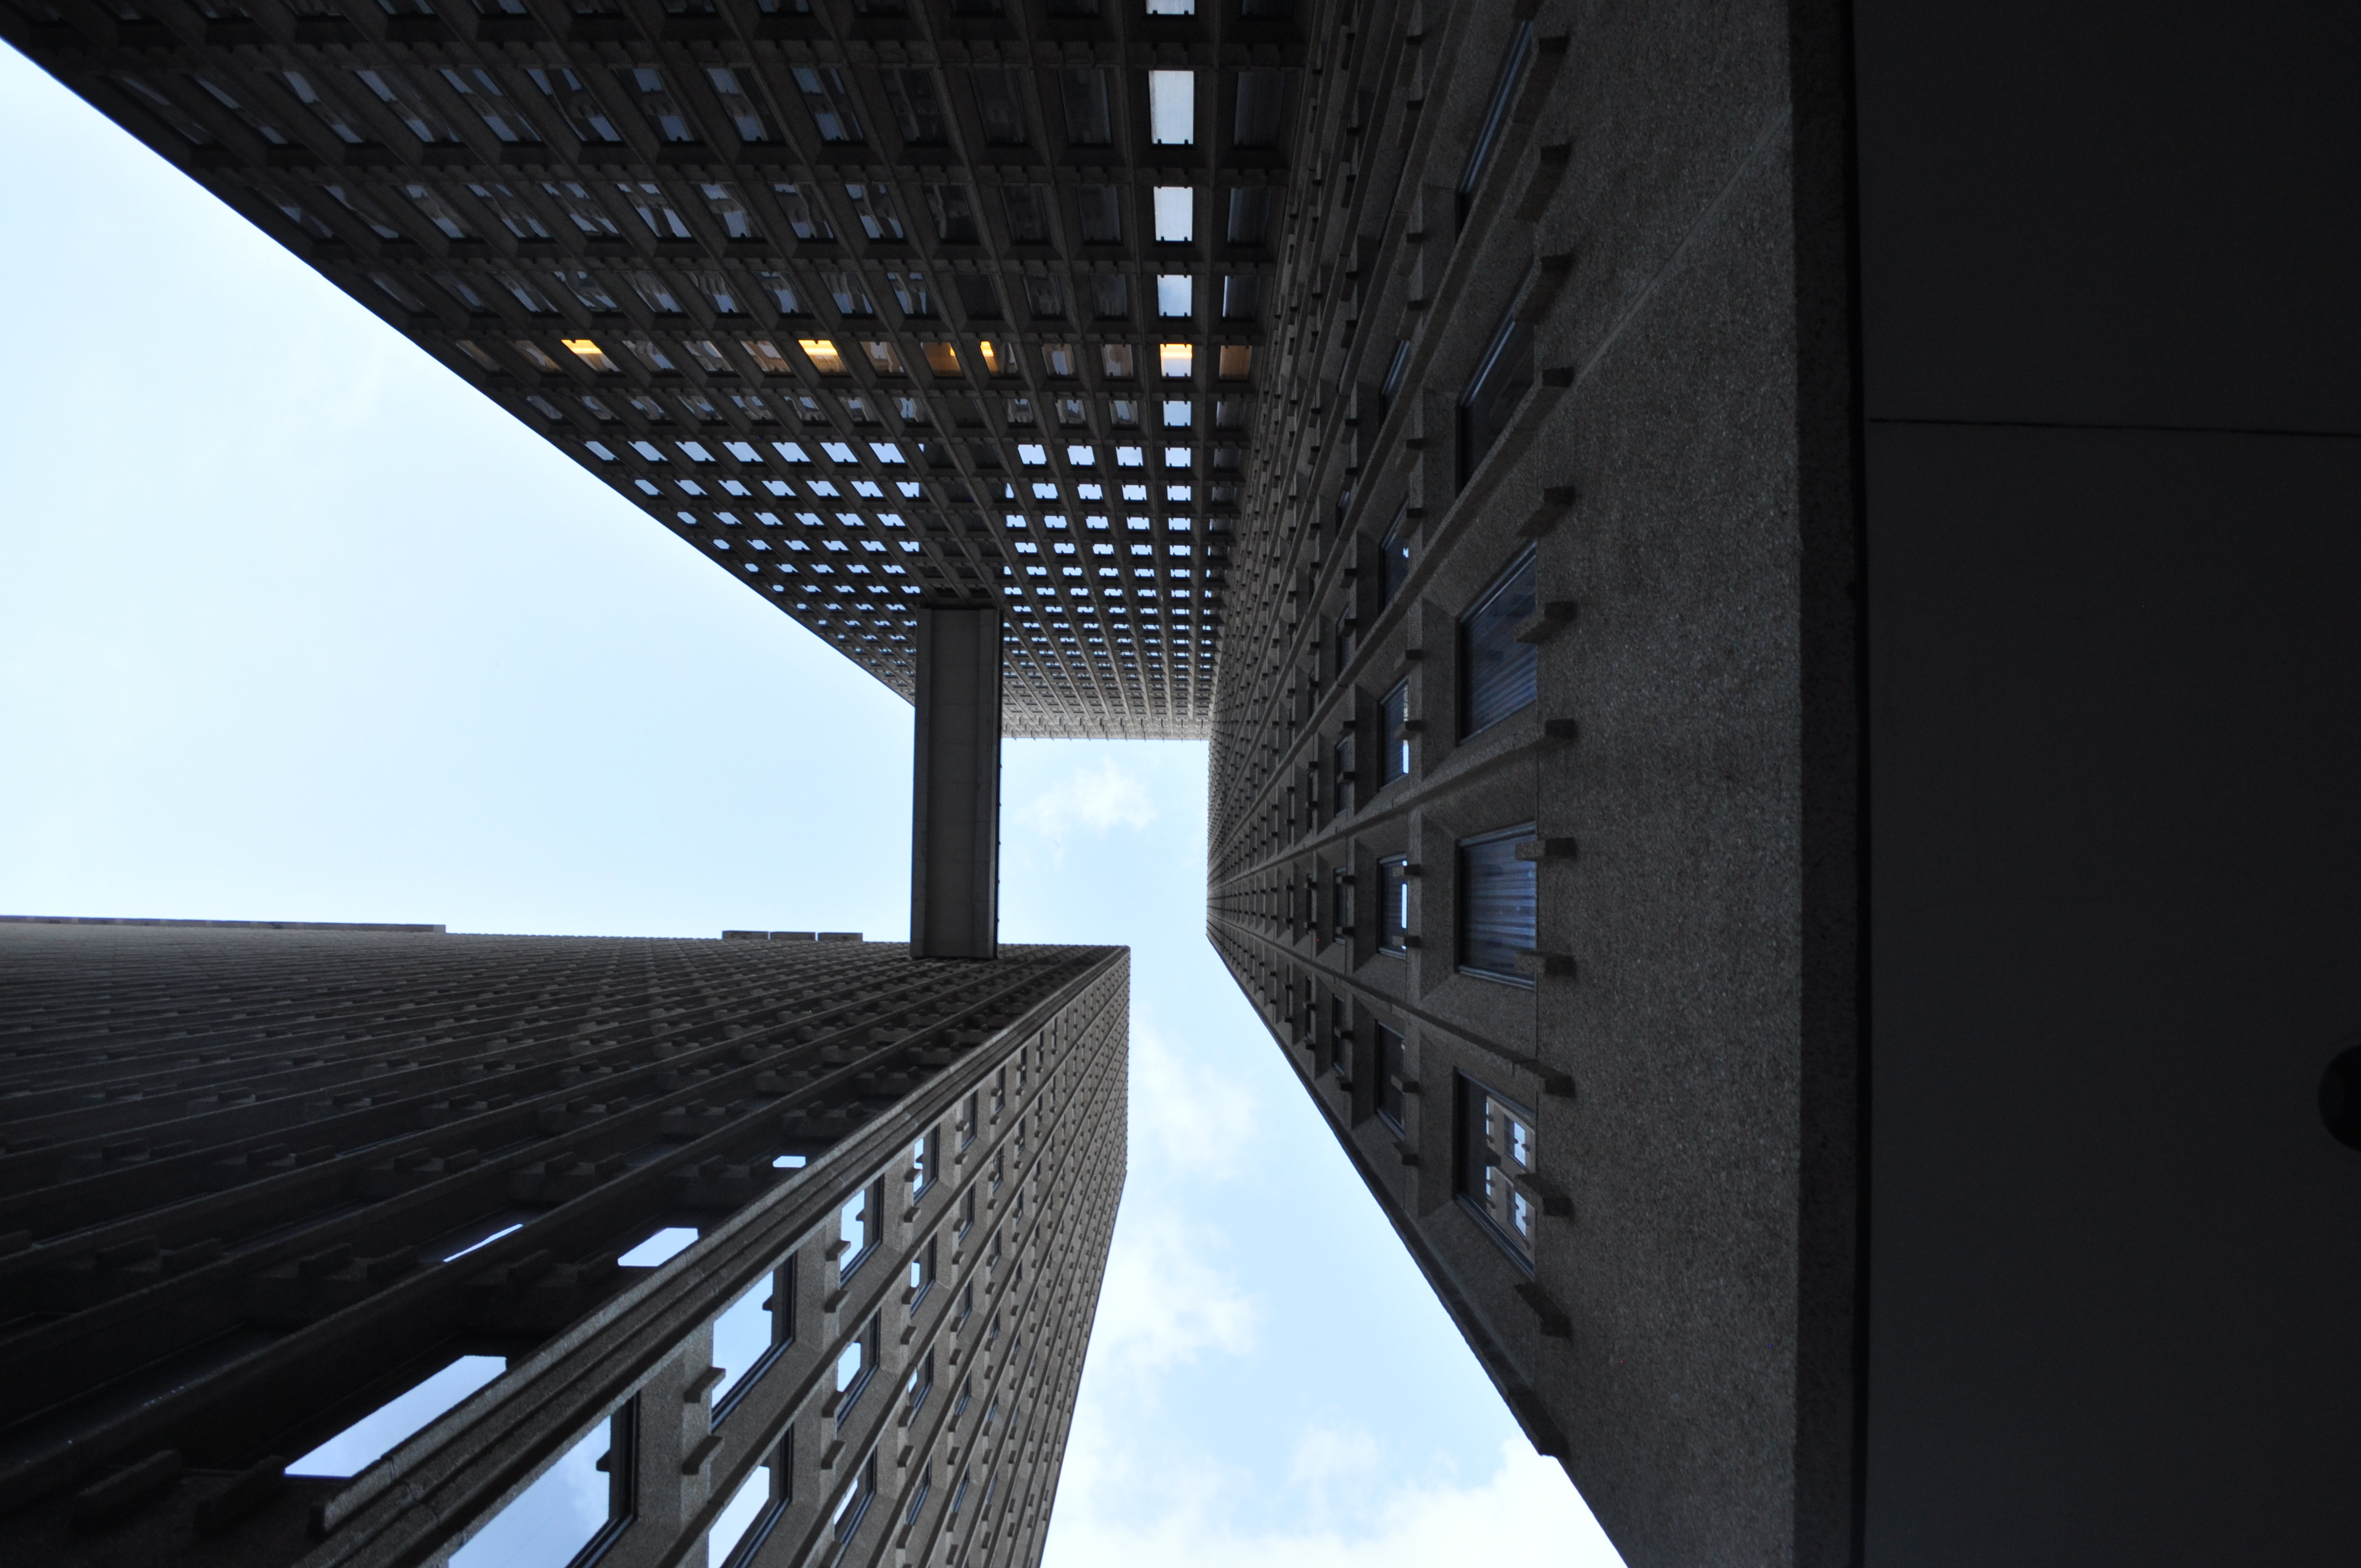 Looking up to the buildings and a skybridge.